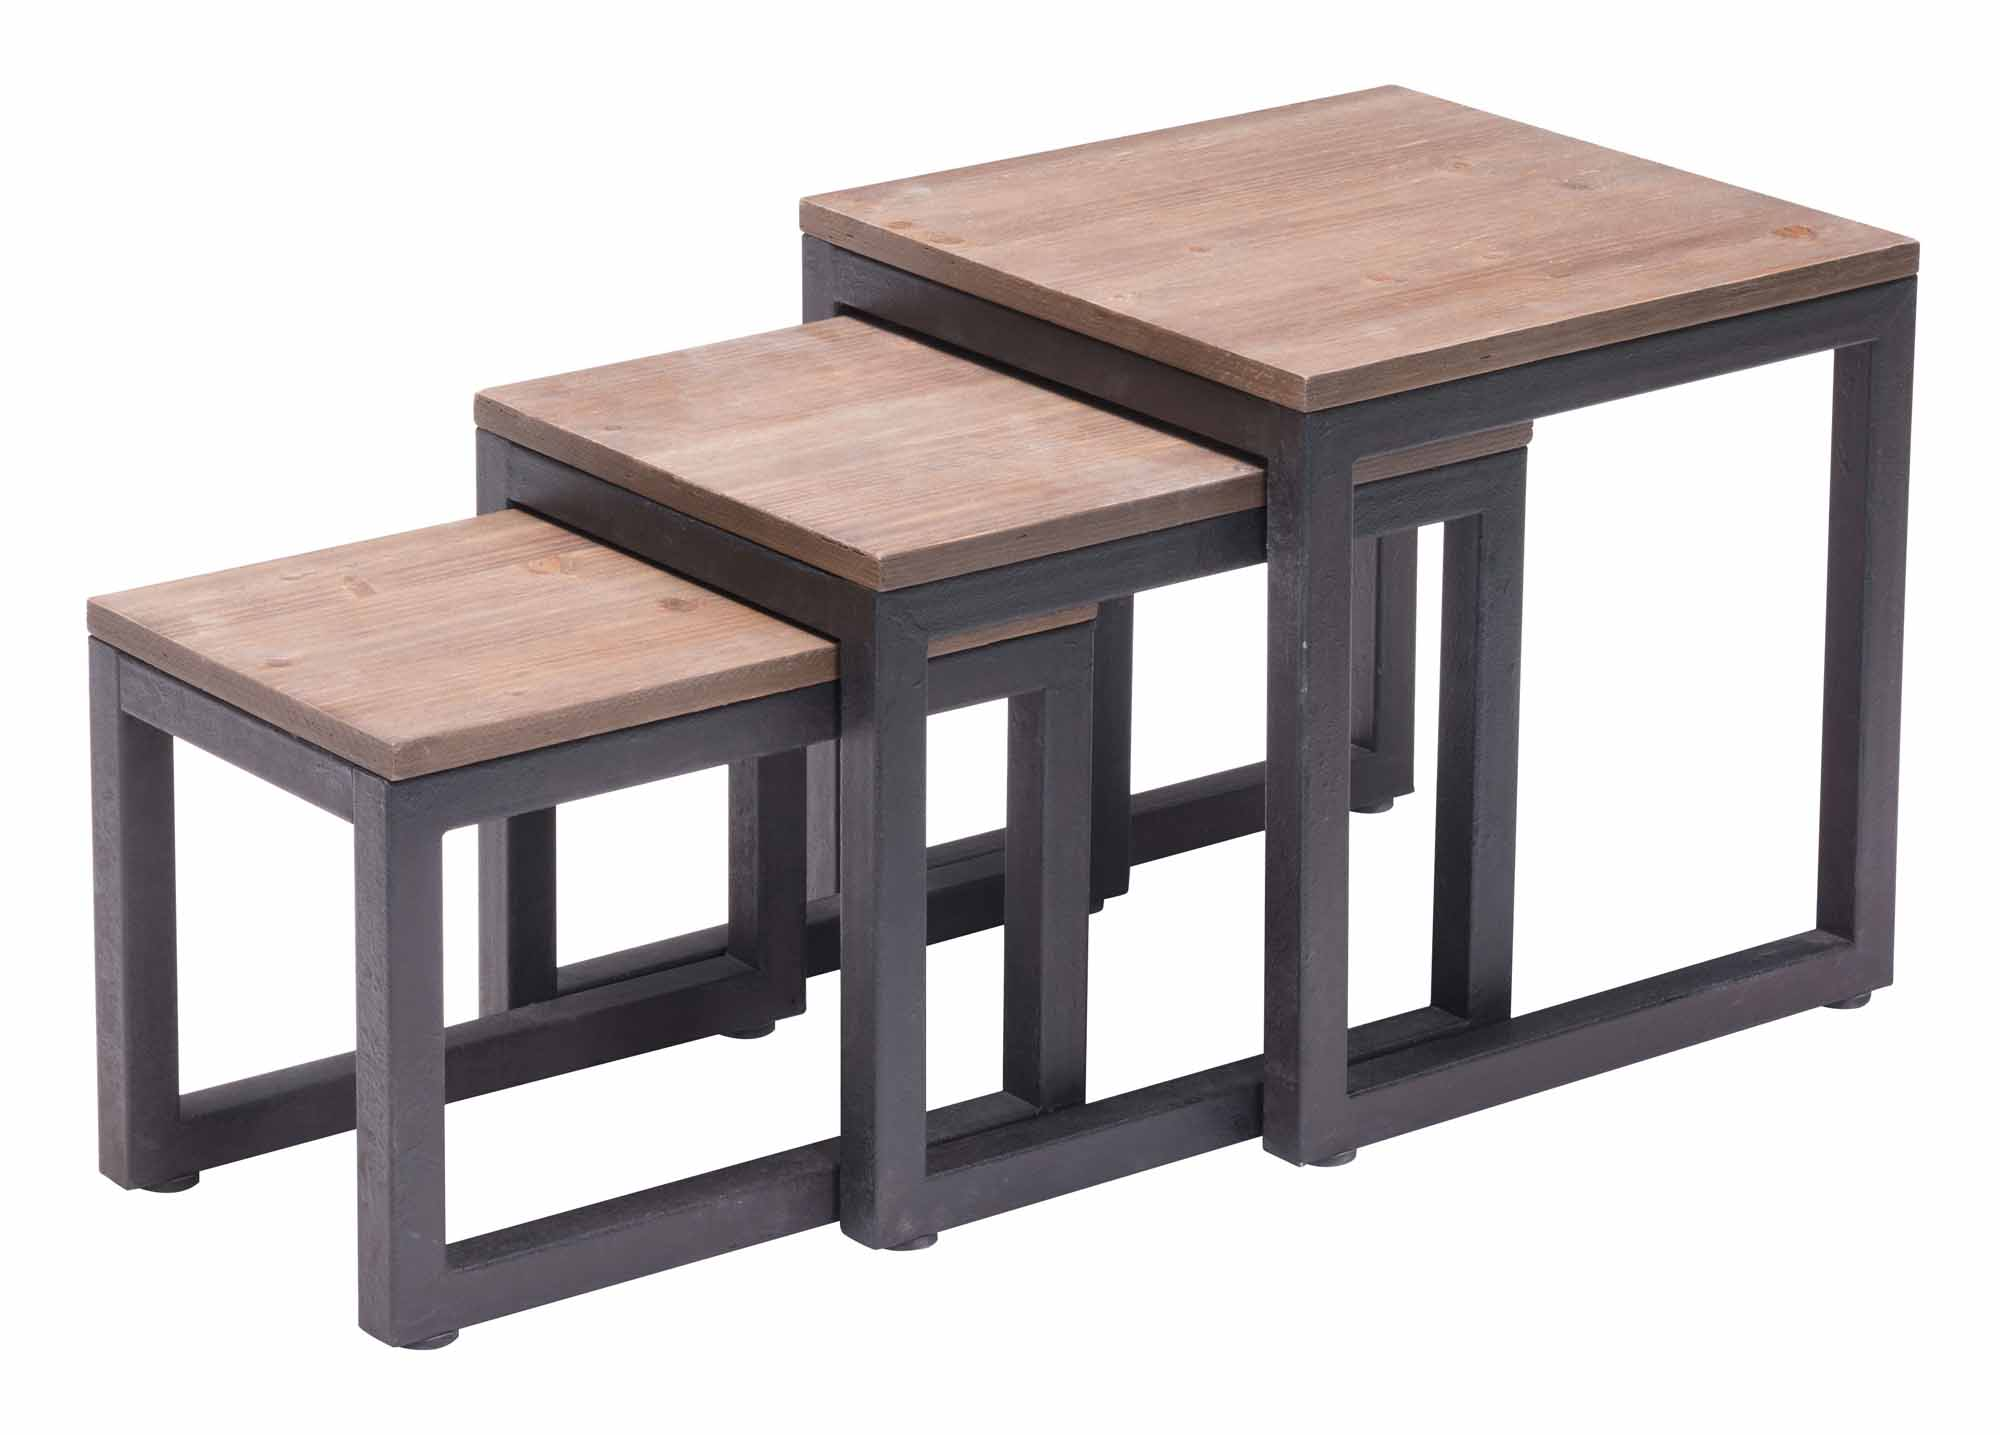 Civic Center Nesting Tables Distressed Natural by Zuo Modern